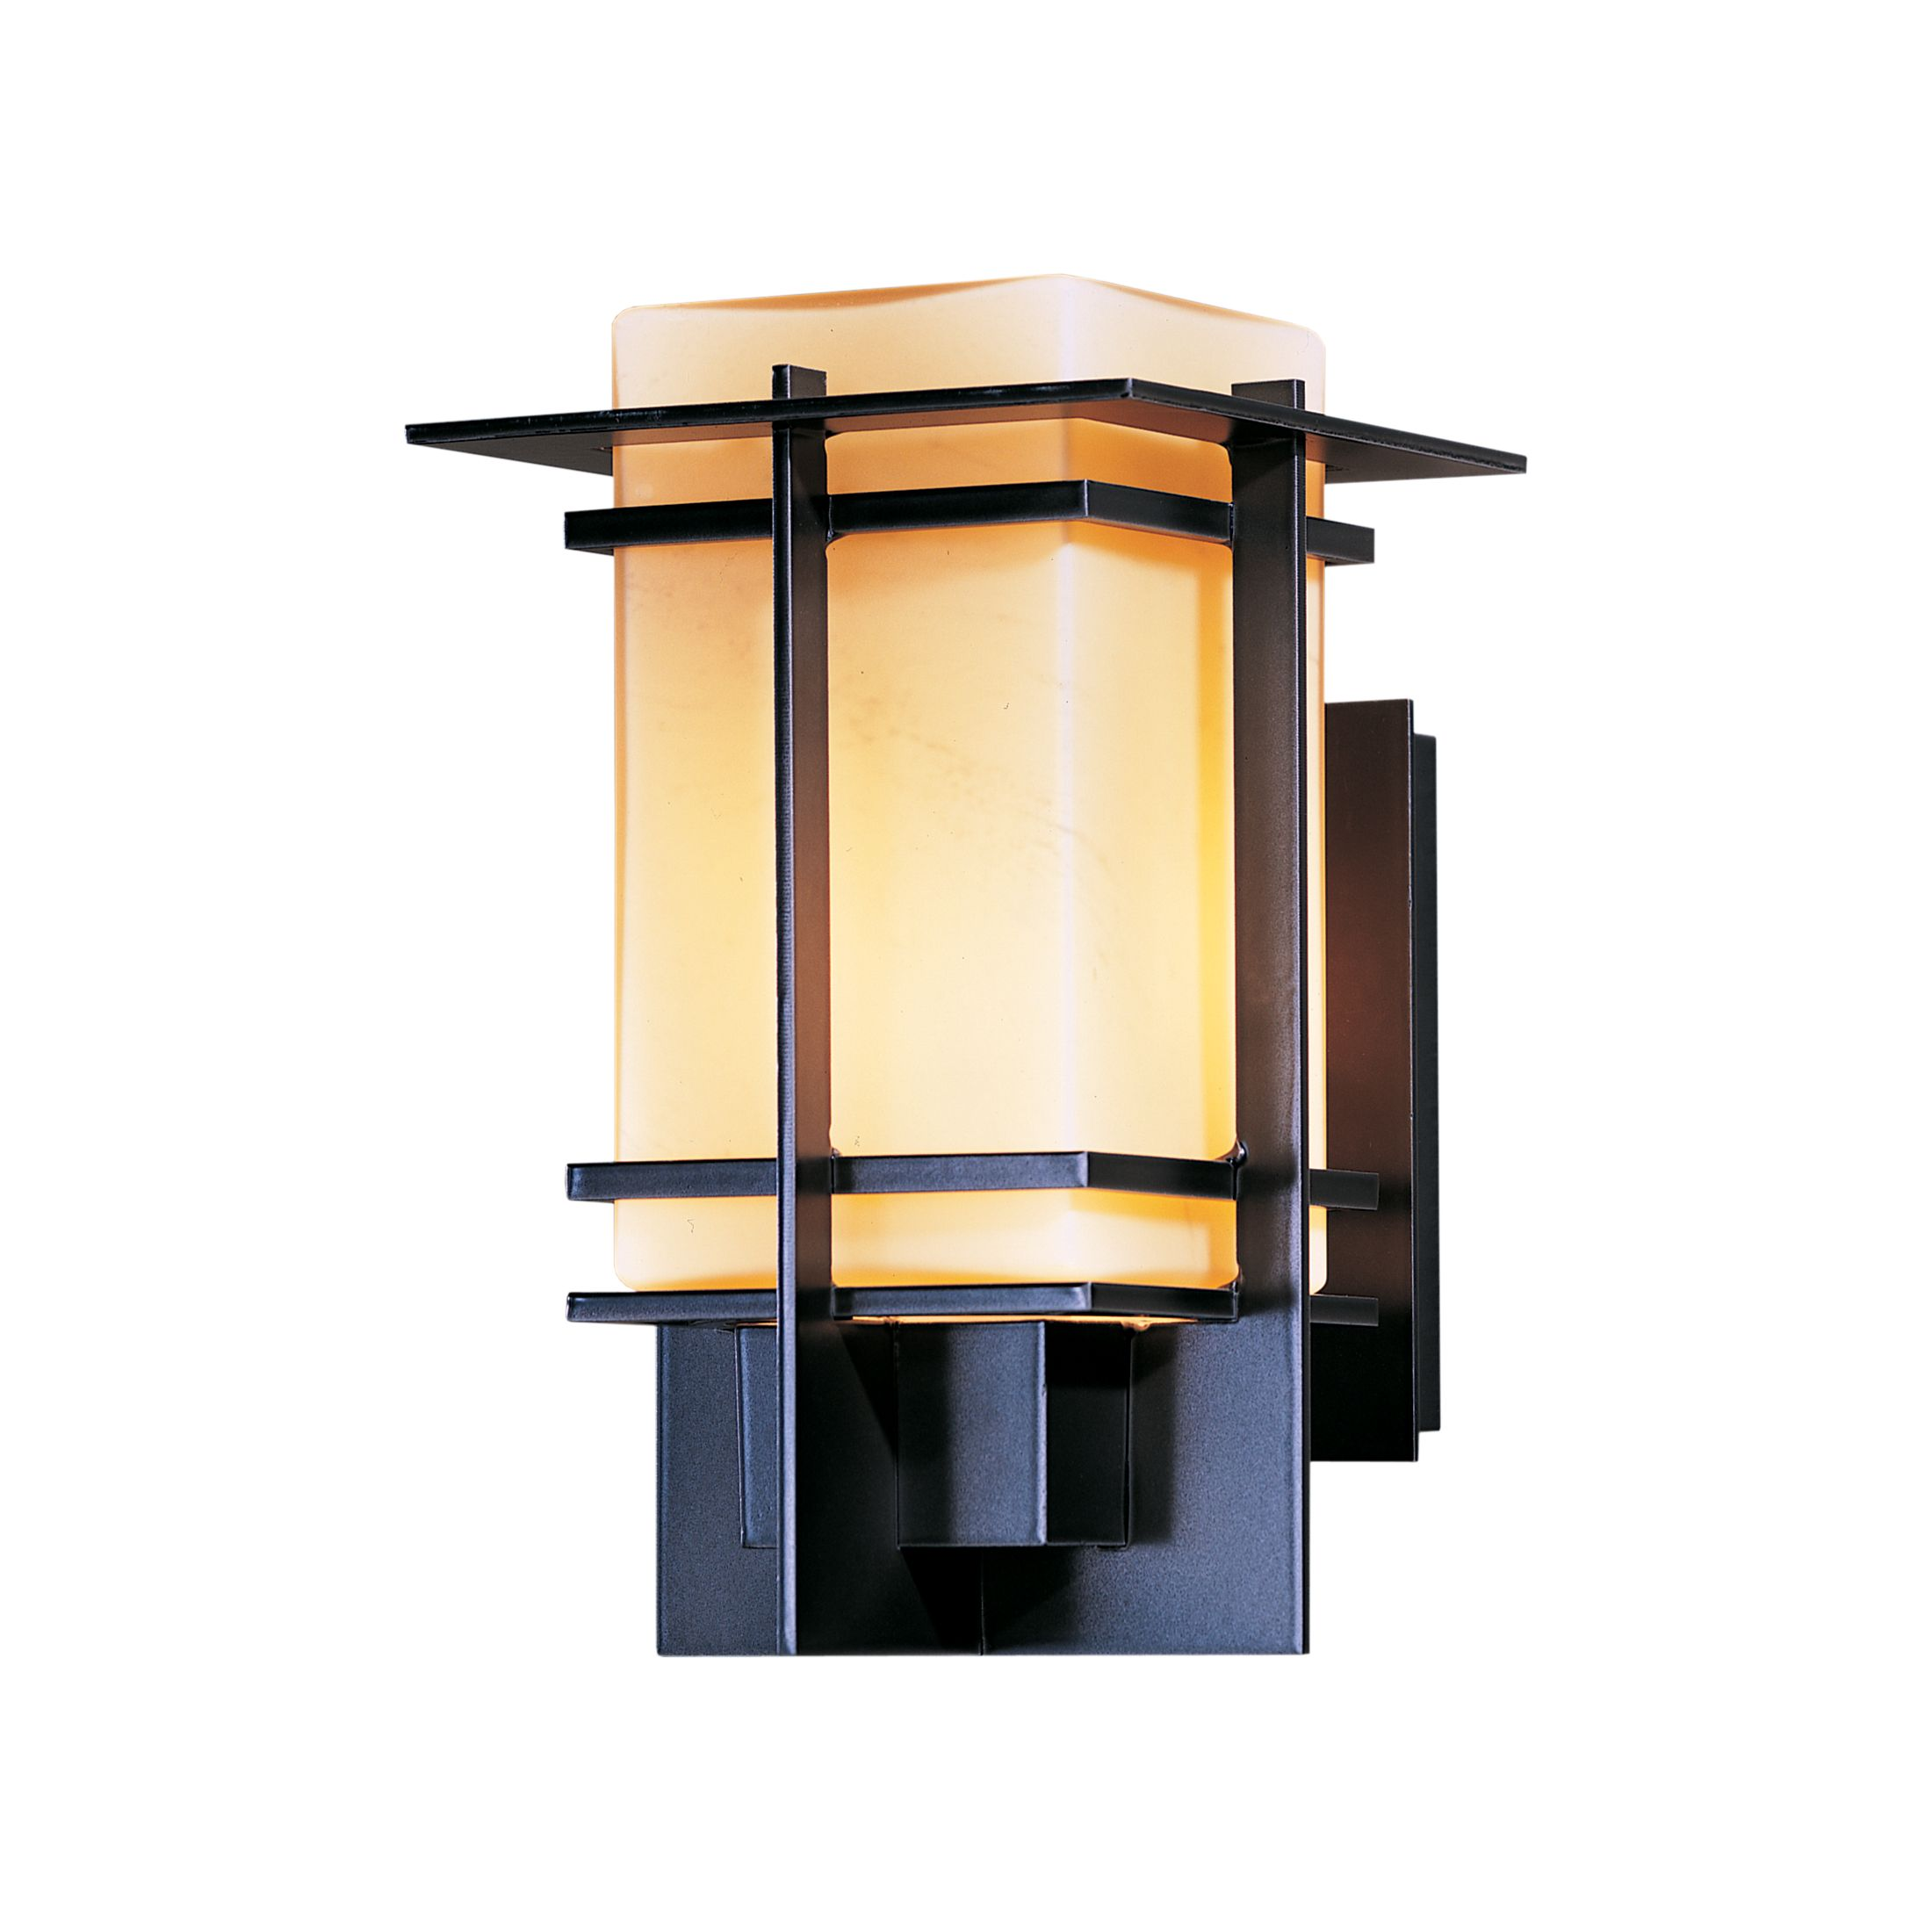 Thumbnail for Tourou Small Interior Sconce